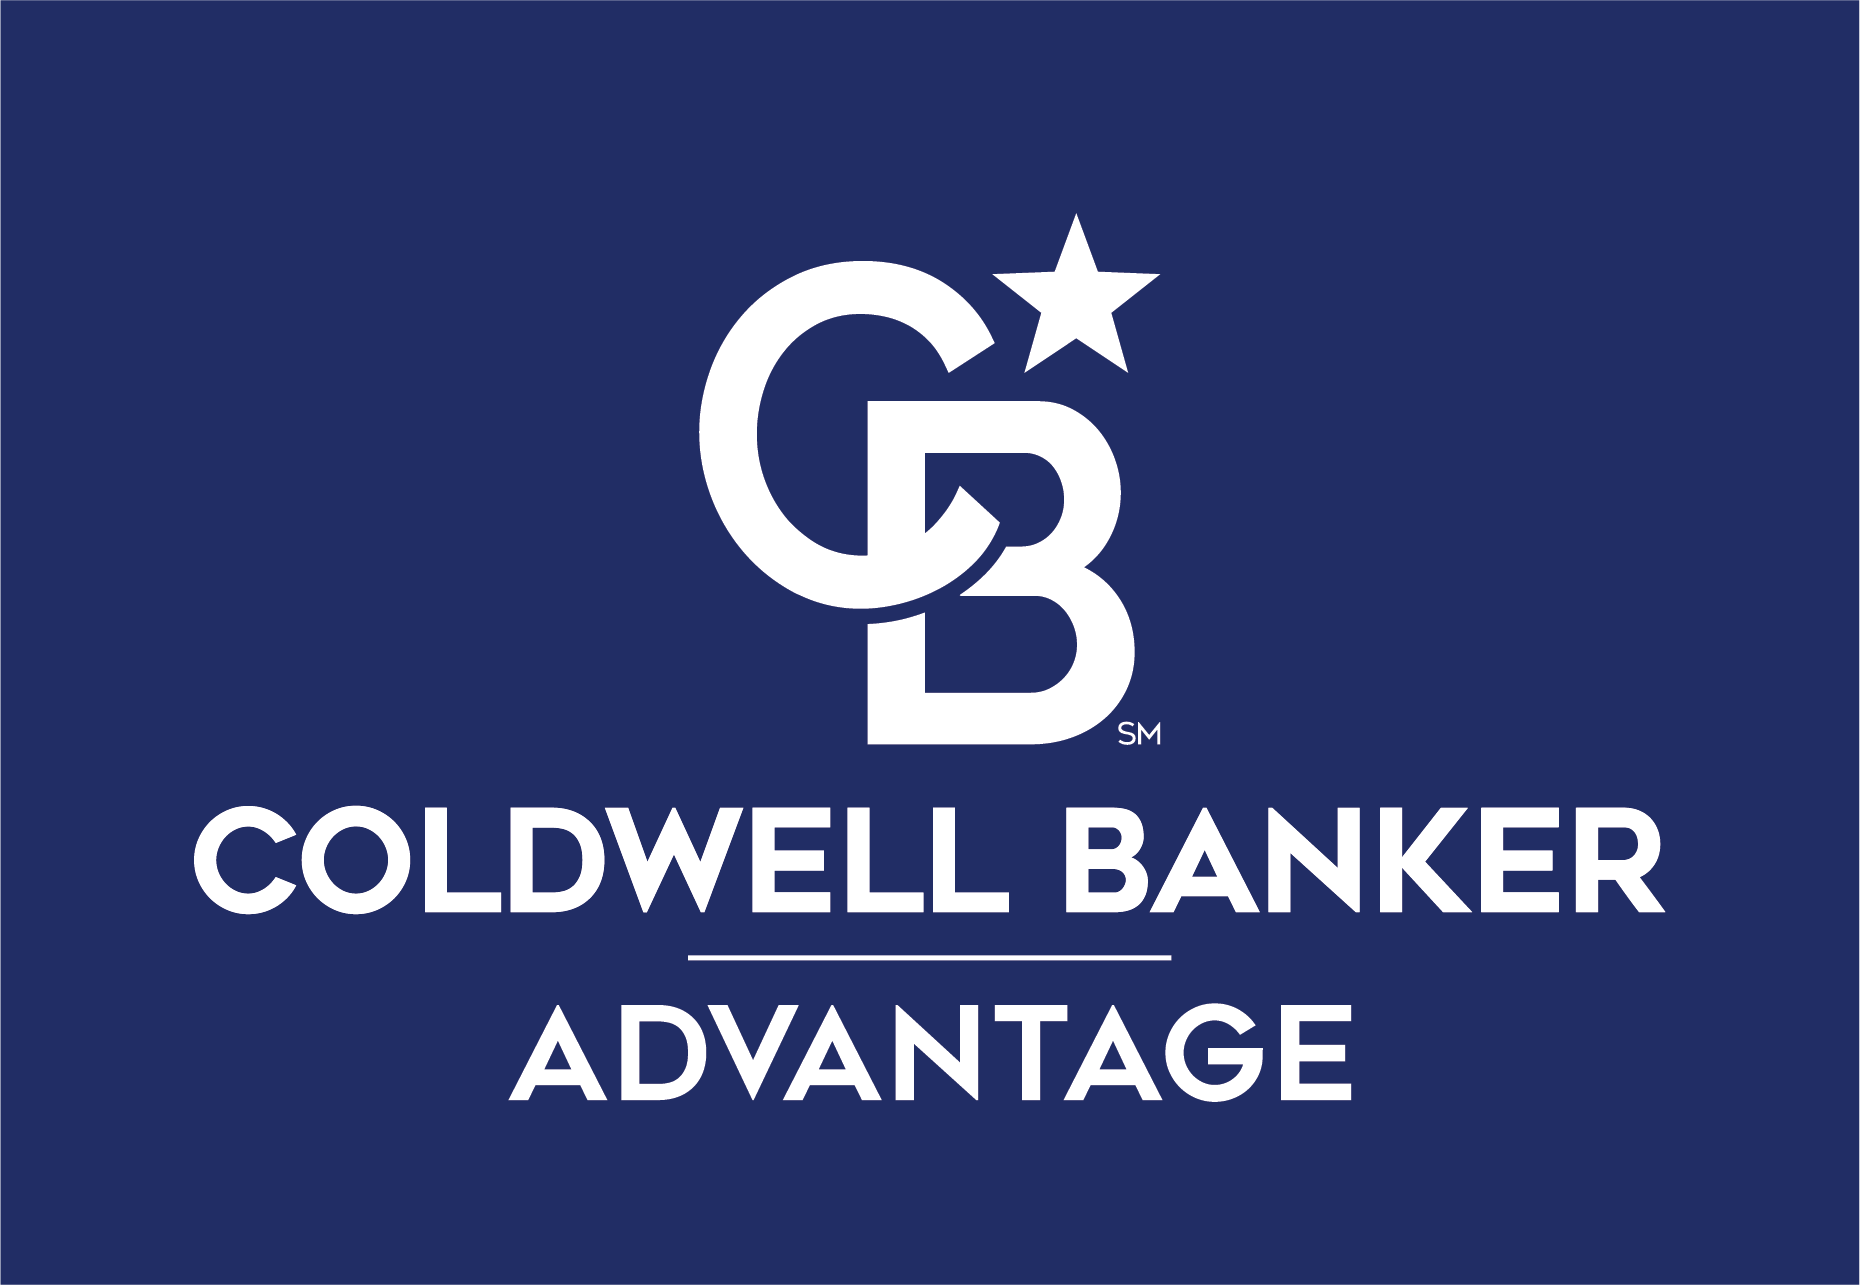 Monica Worth - Coldwell Banker Advantage Logo